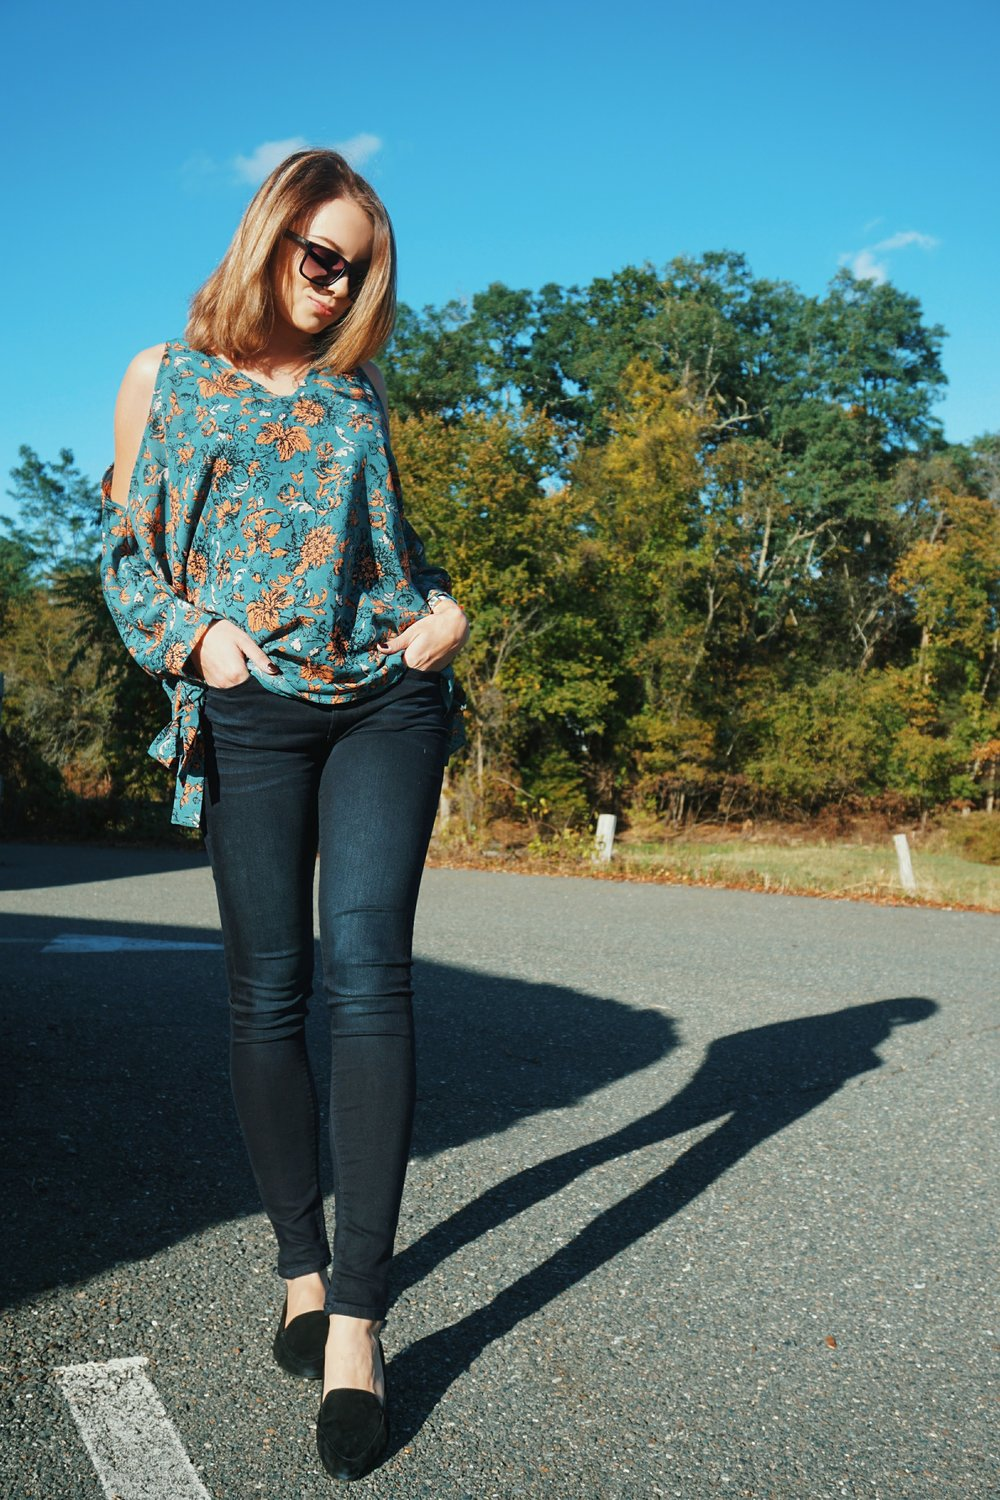 Autumn outfit inspiraton: blue floral top, dark jeans, black flats.